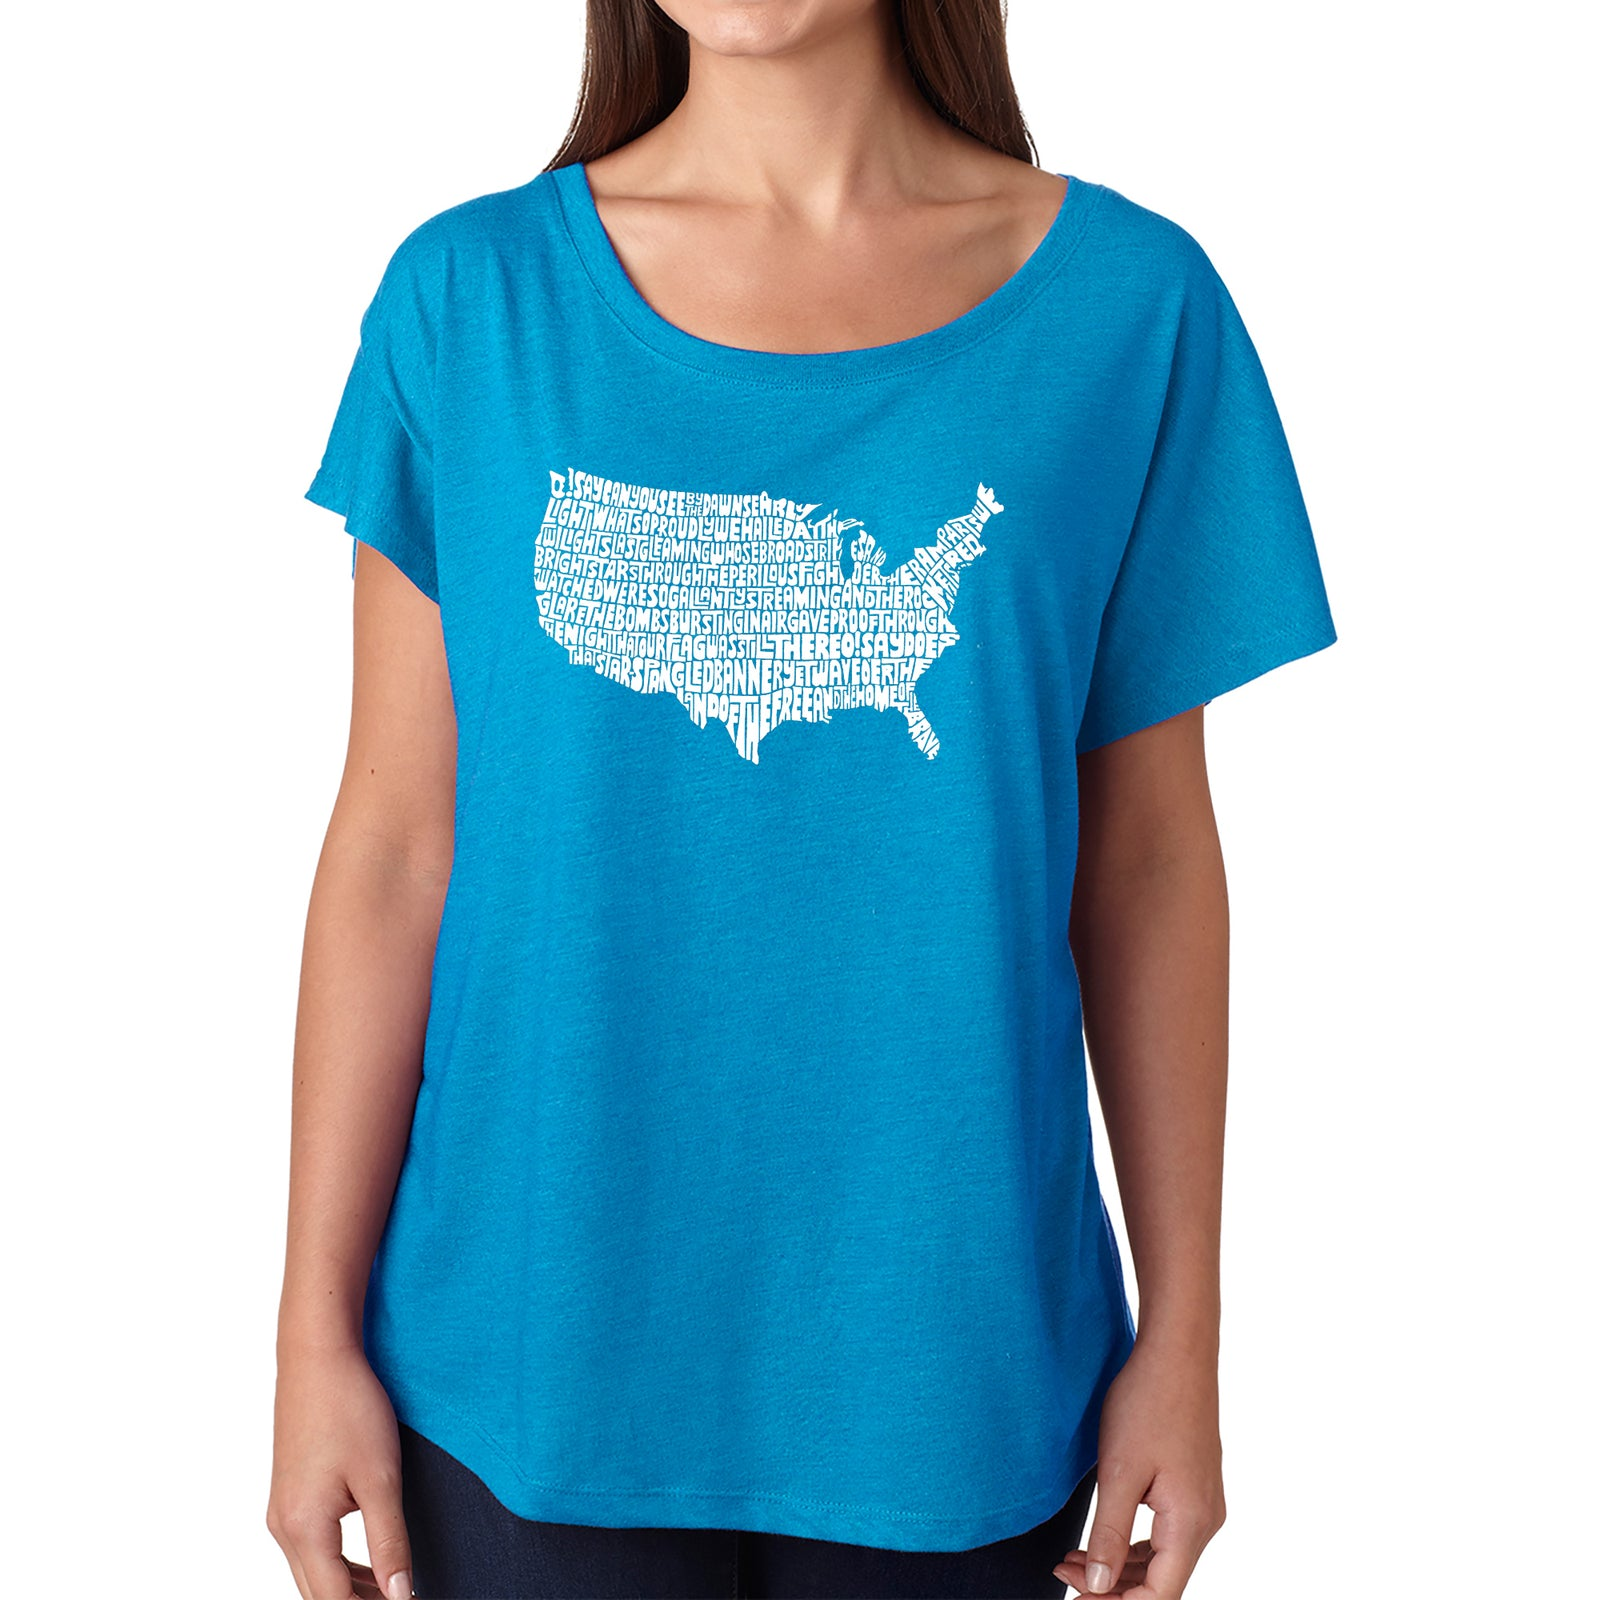 Women's Loose Fit Dolman Cut Word Art Shirt - THE STAR SPANGLED BANNER